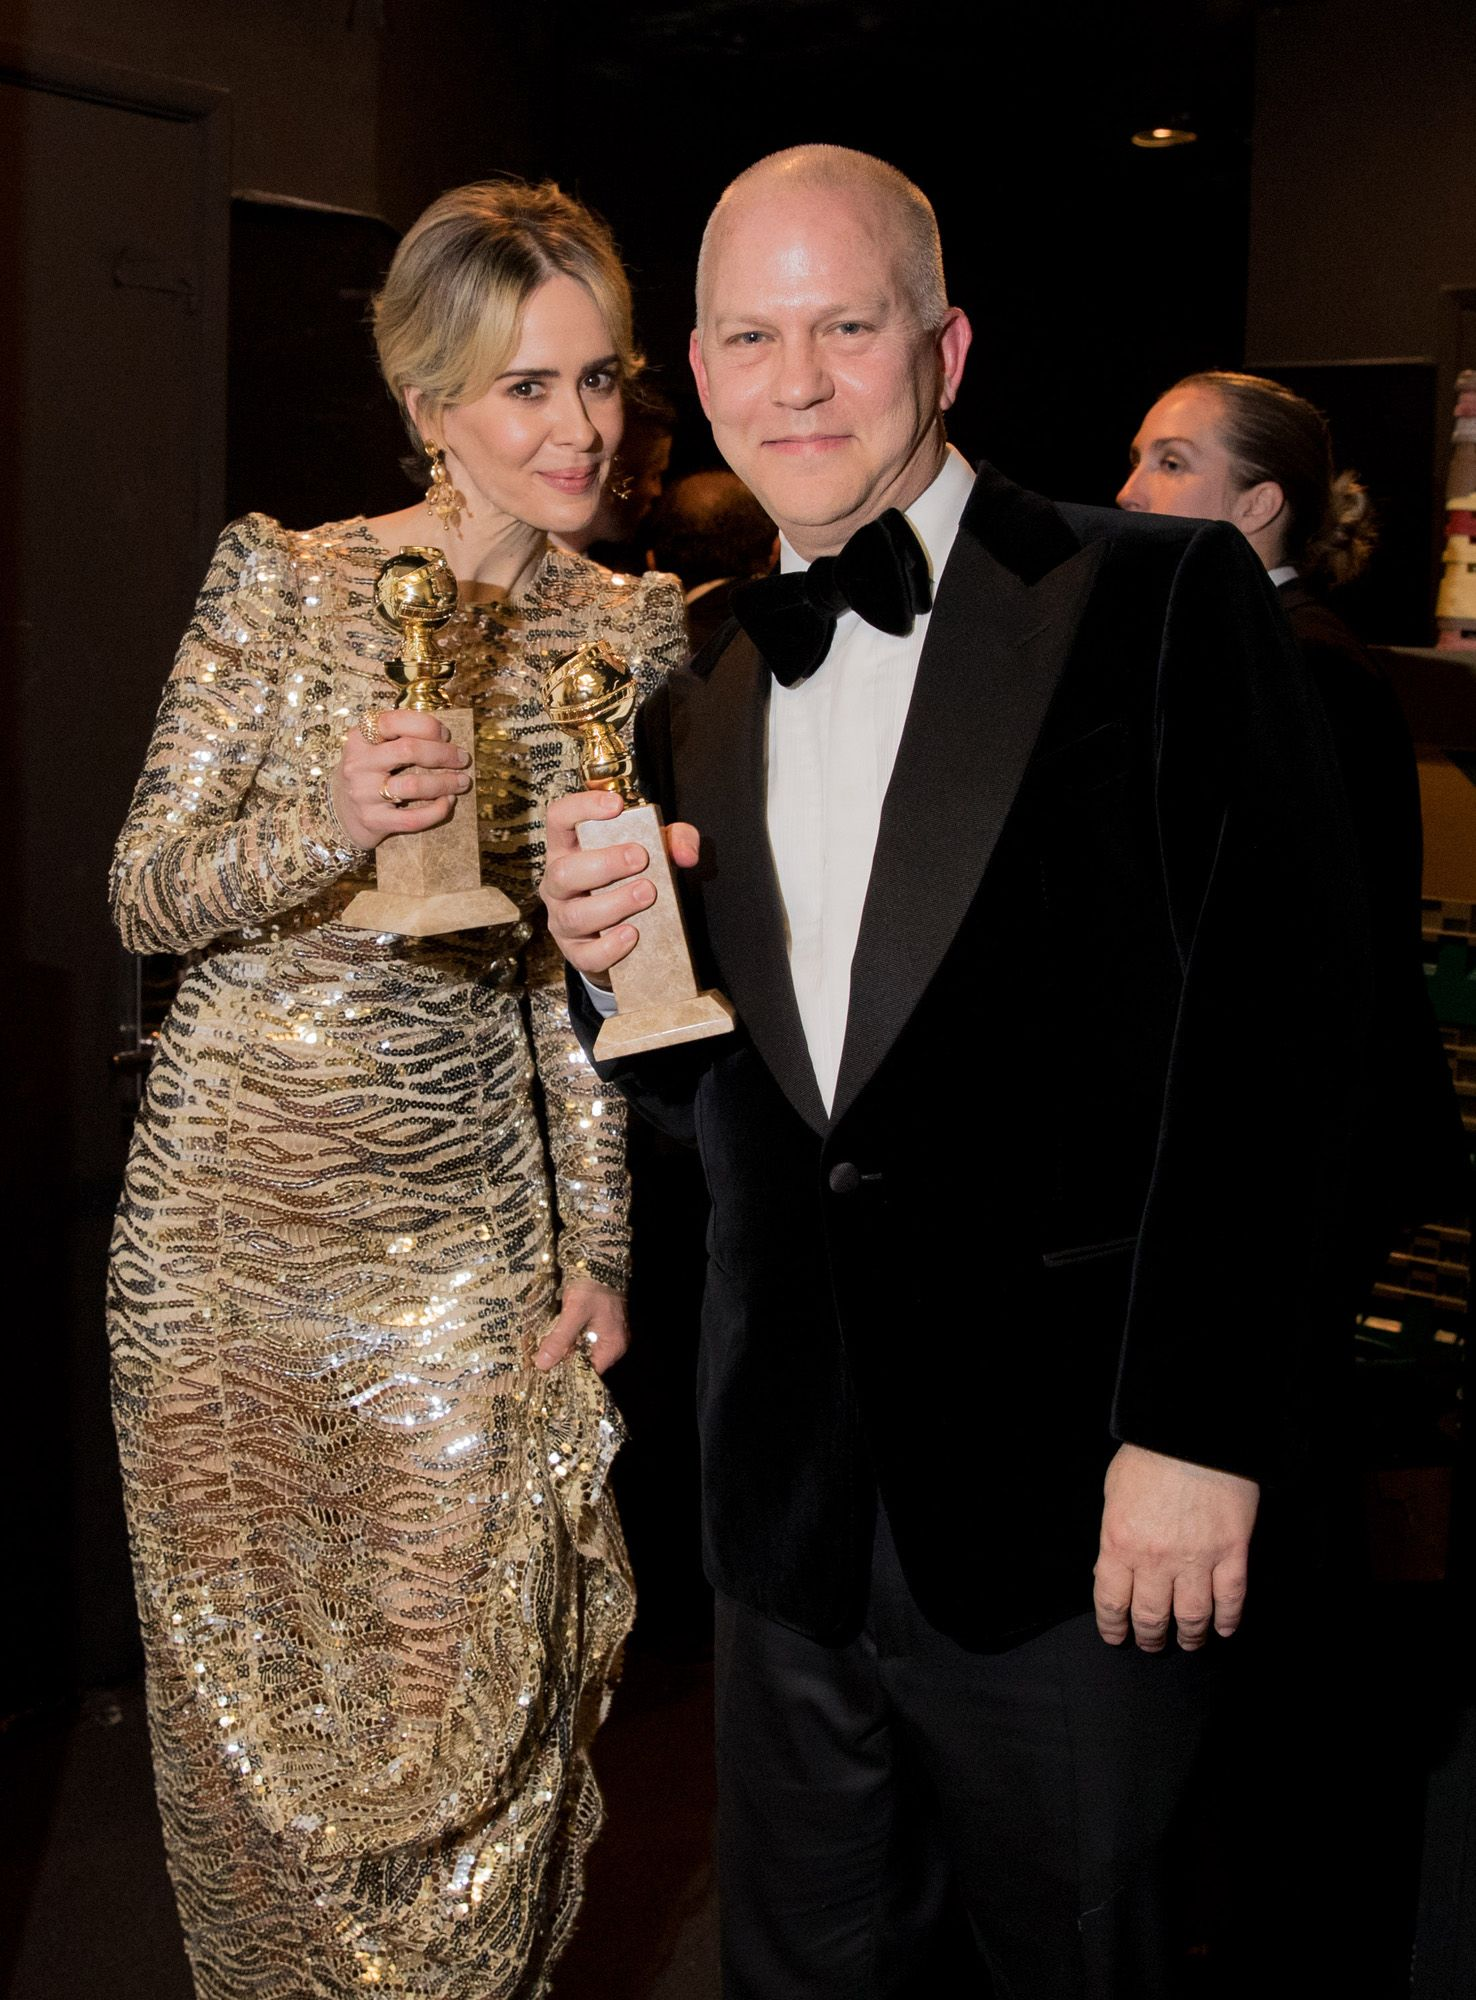 Go Behind the Scenes at the 2017 Golden Globes - Sarah Paulson